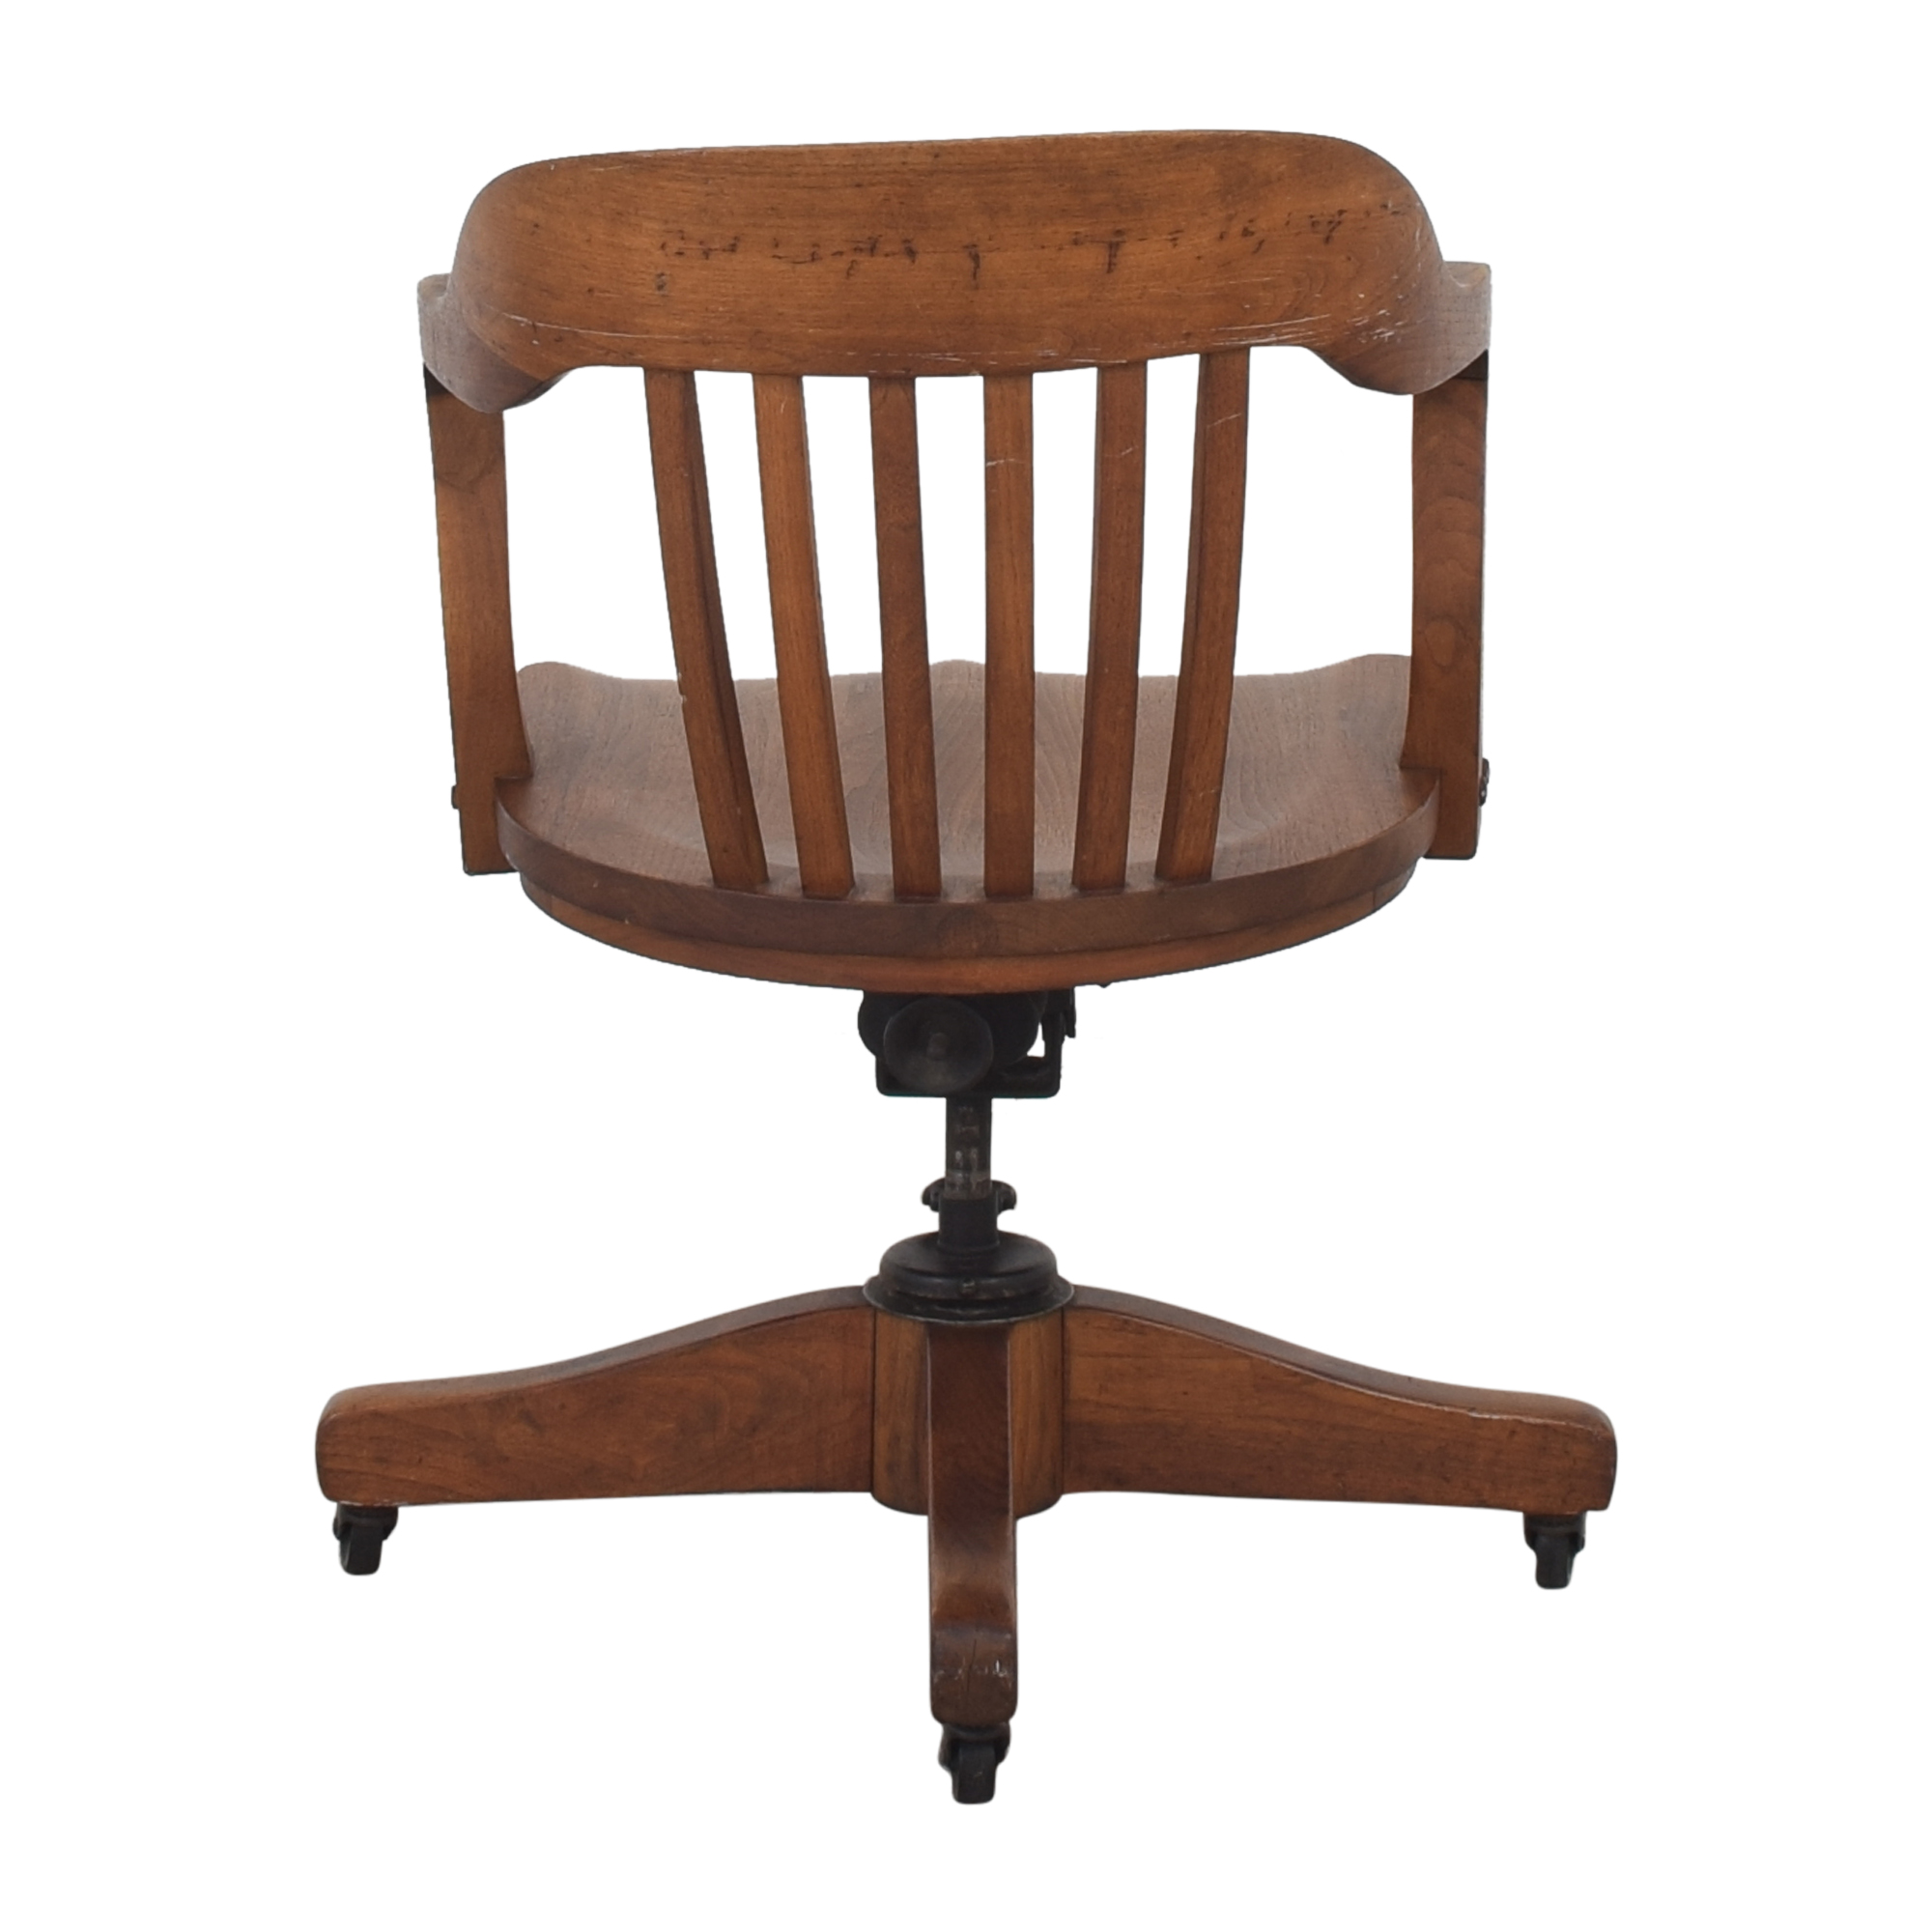 P Derby Co P Derby Co Bankers Chair price